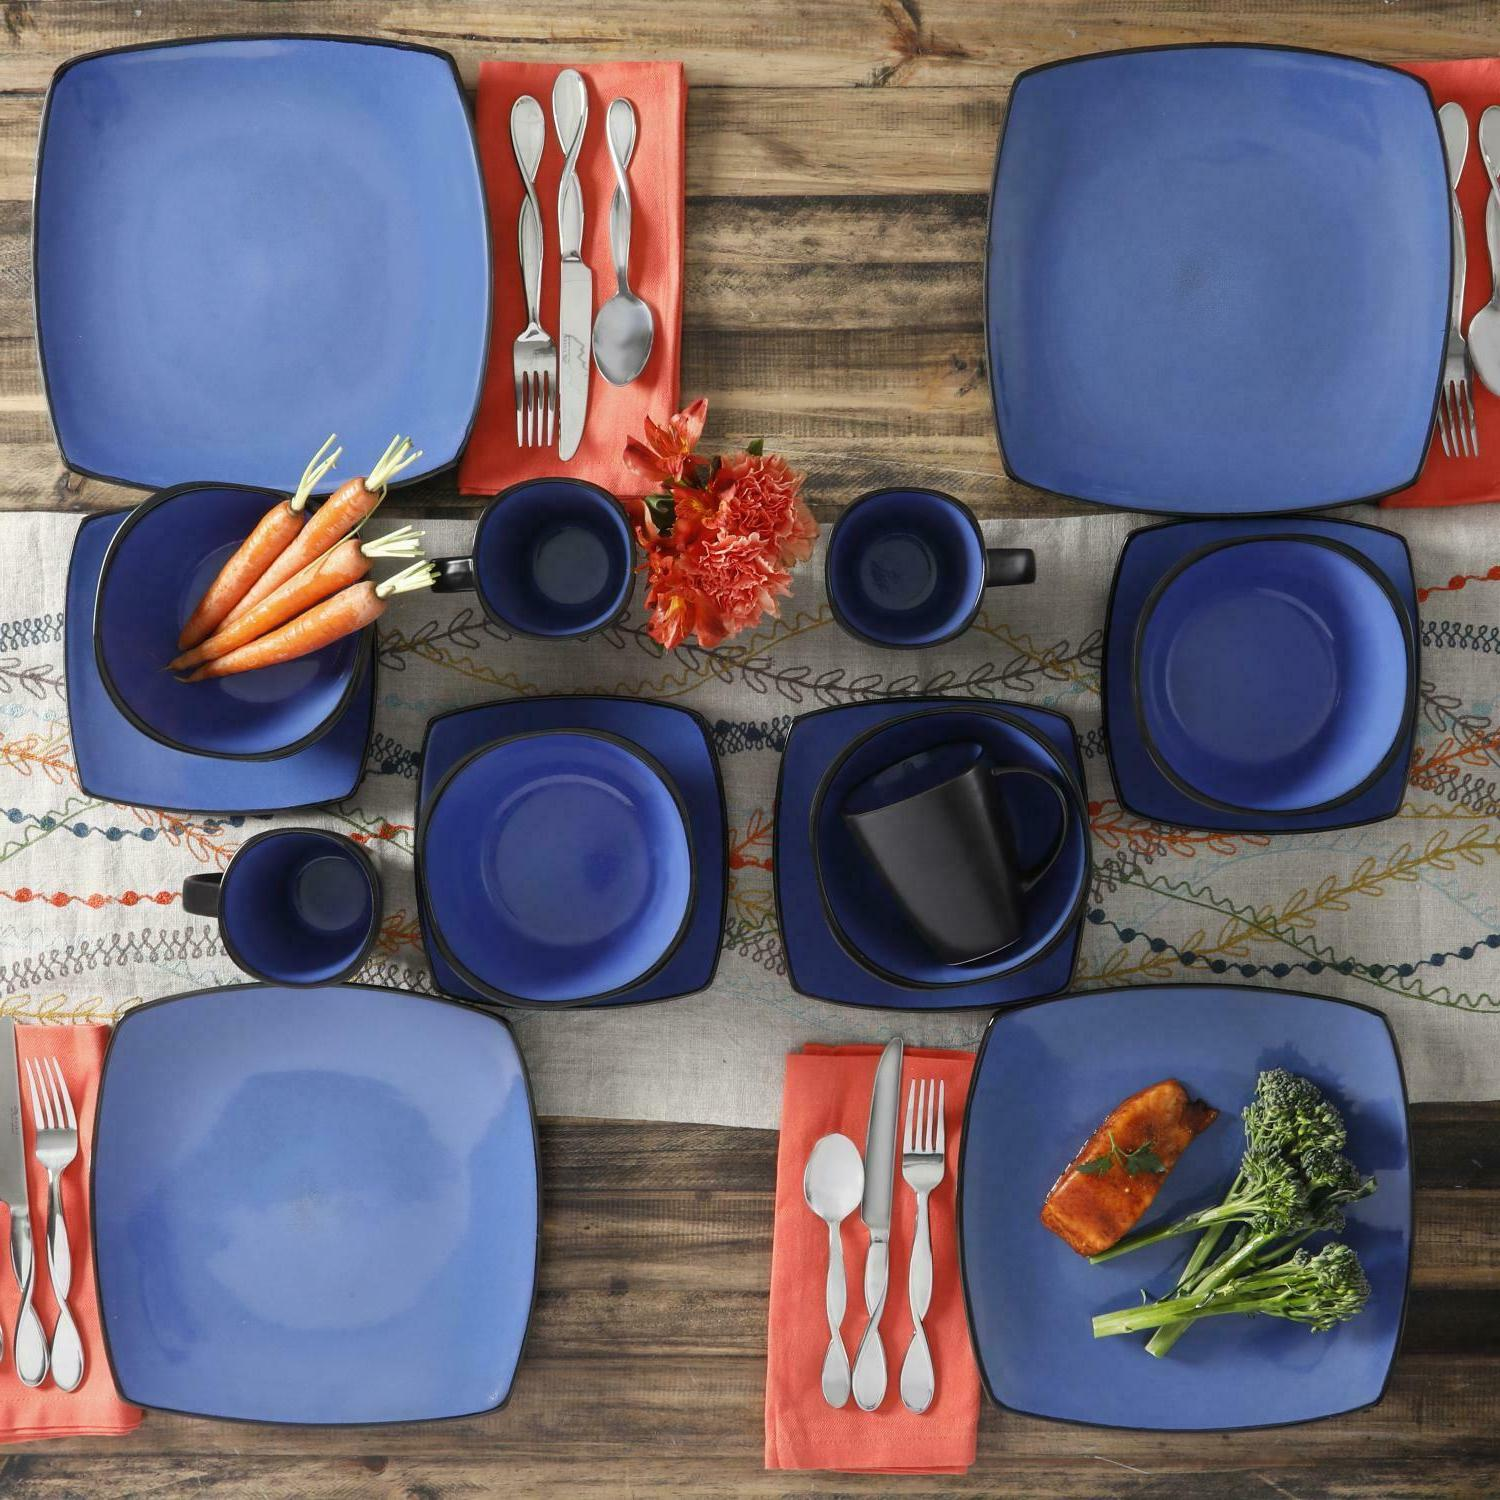 Modern Dinnerware 16 Piece Square Plates Bowls Kitchen